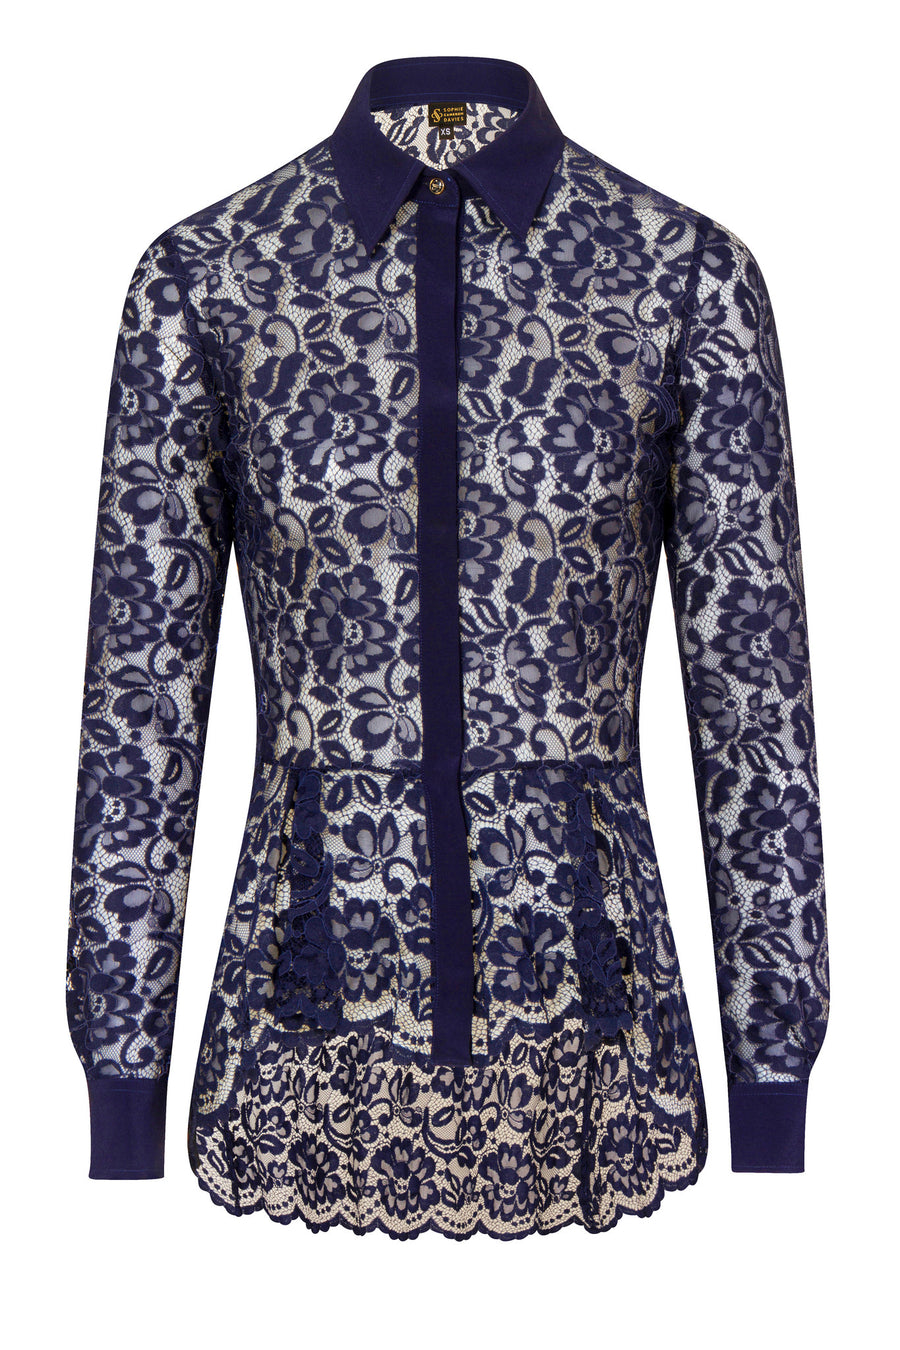 Sophie Cameron Davis-LACE SHIRT MIDNIGHT- Silkarmour-1